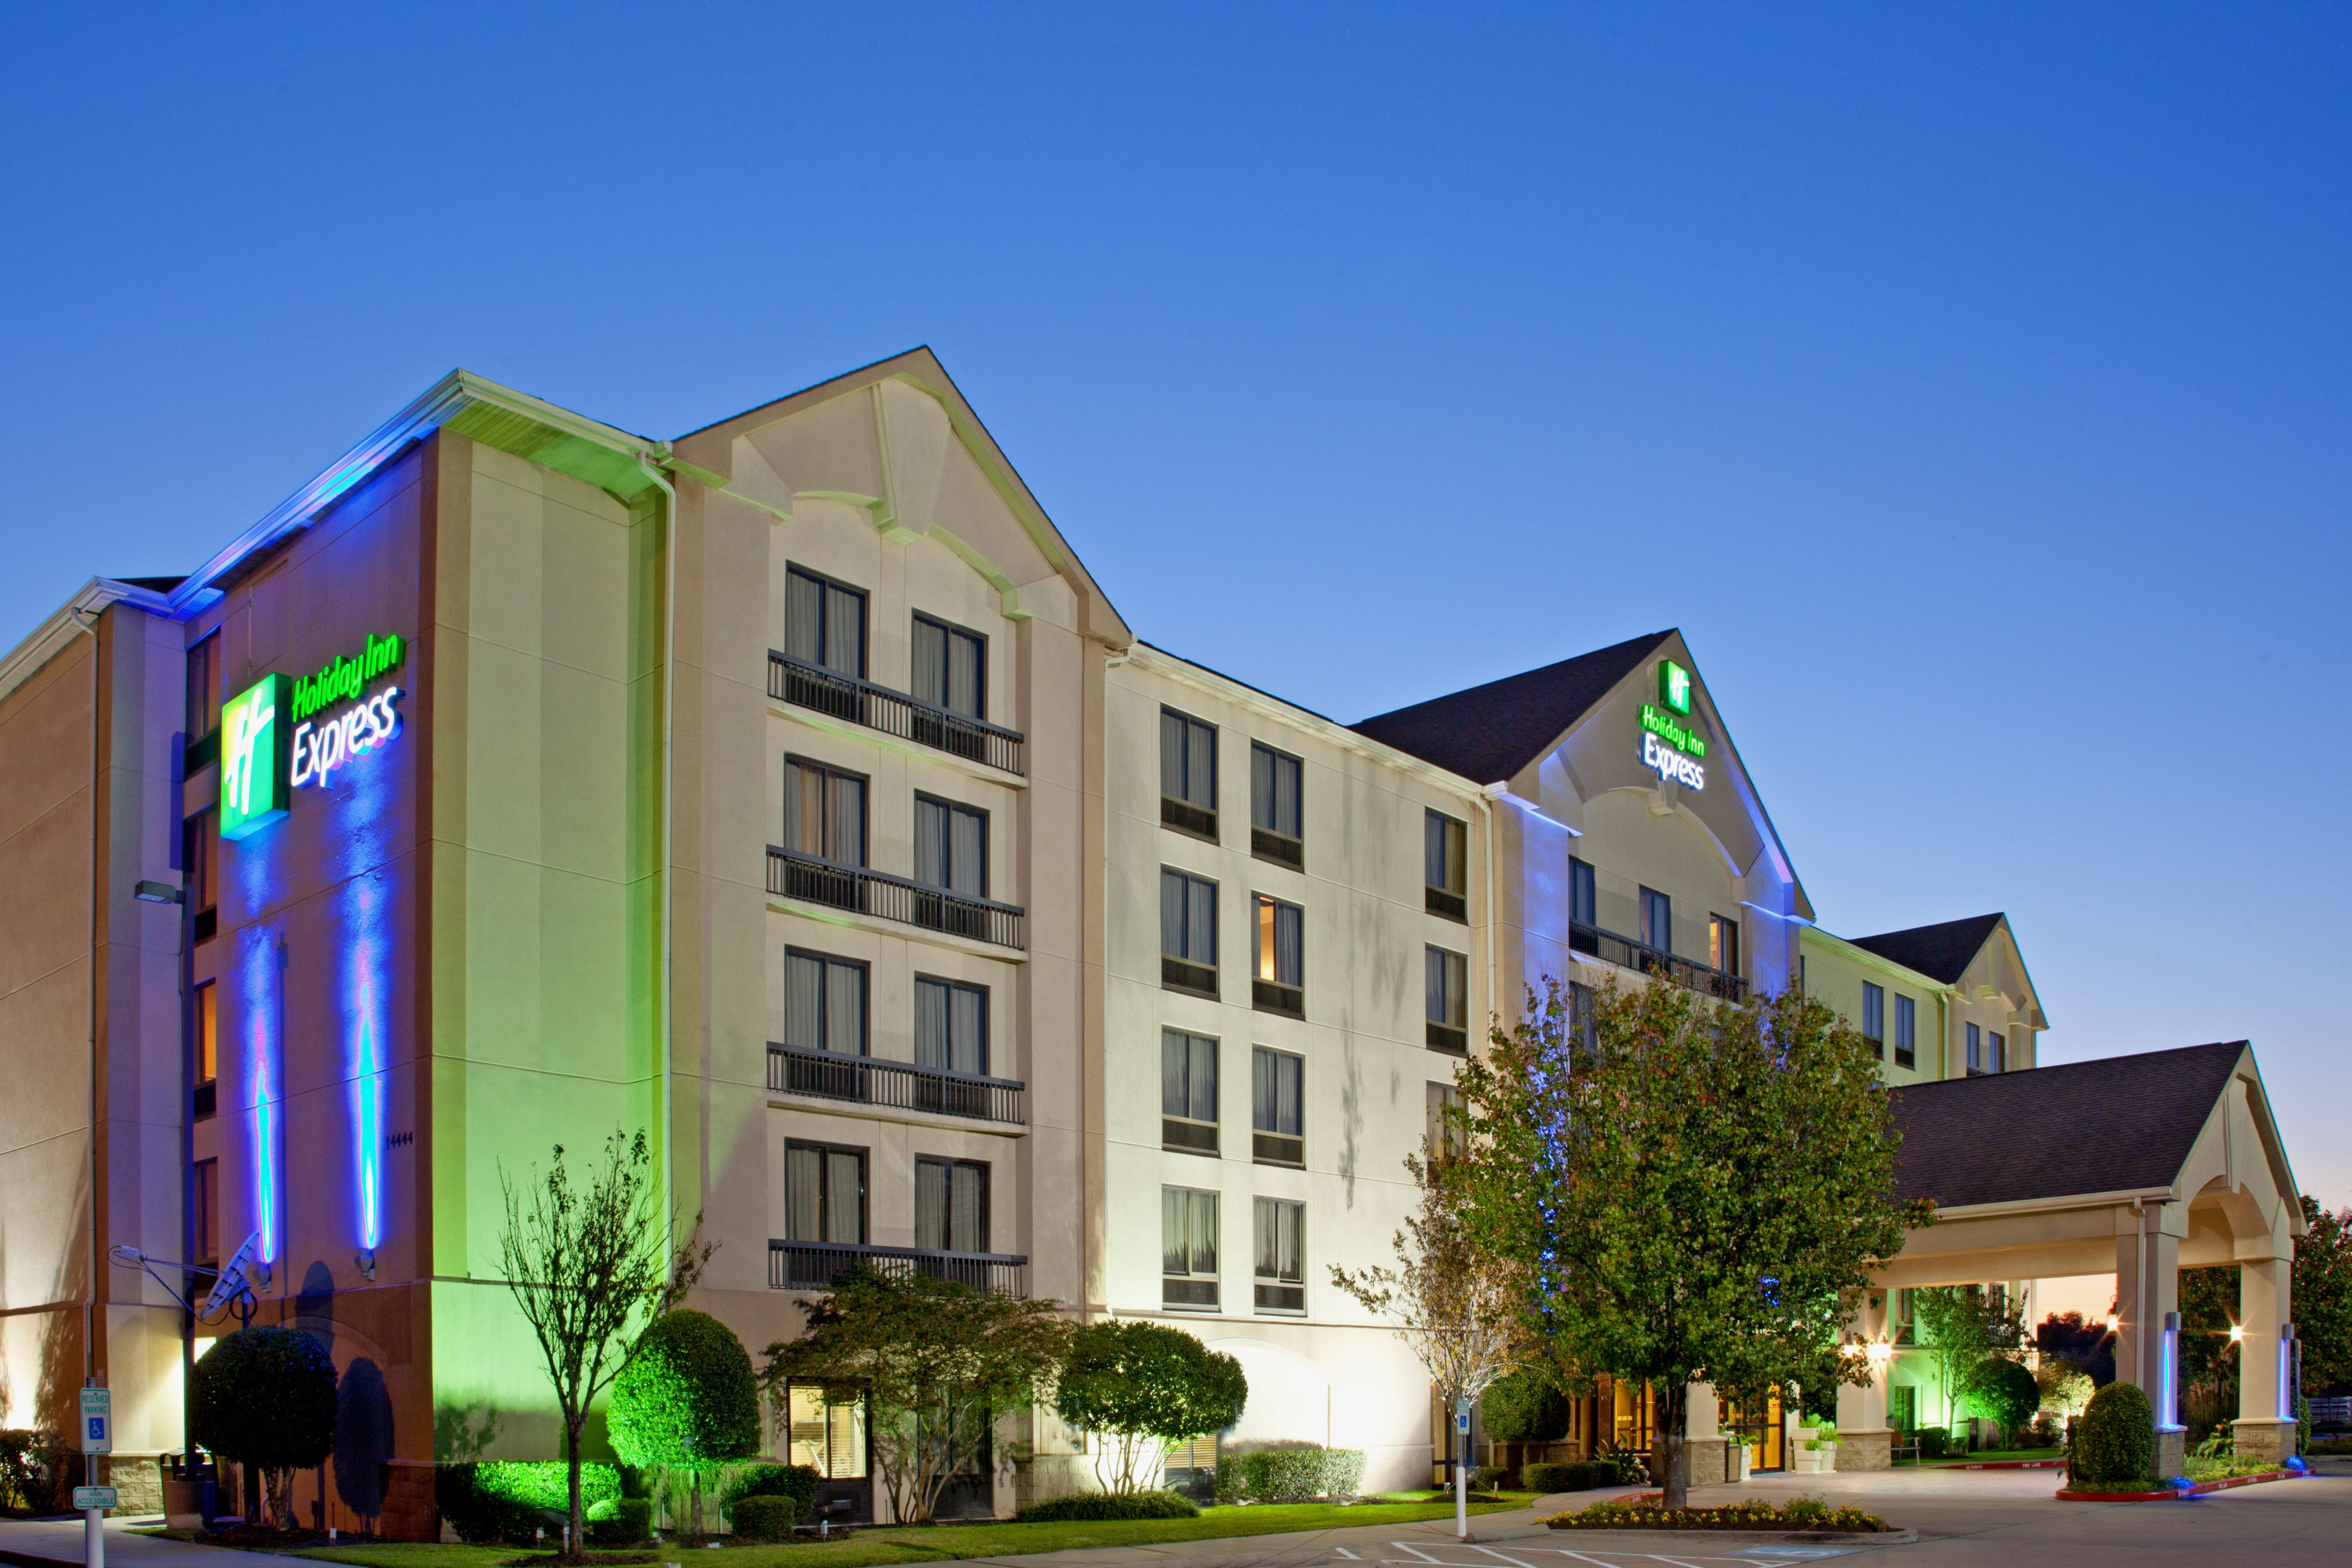 Holiday Inn Express Suites Houston S Medical Ctr Area